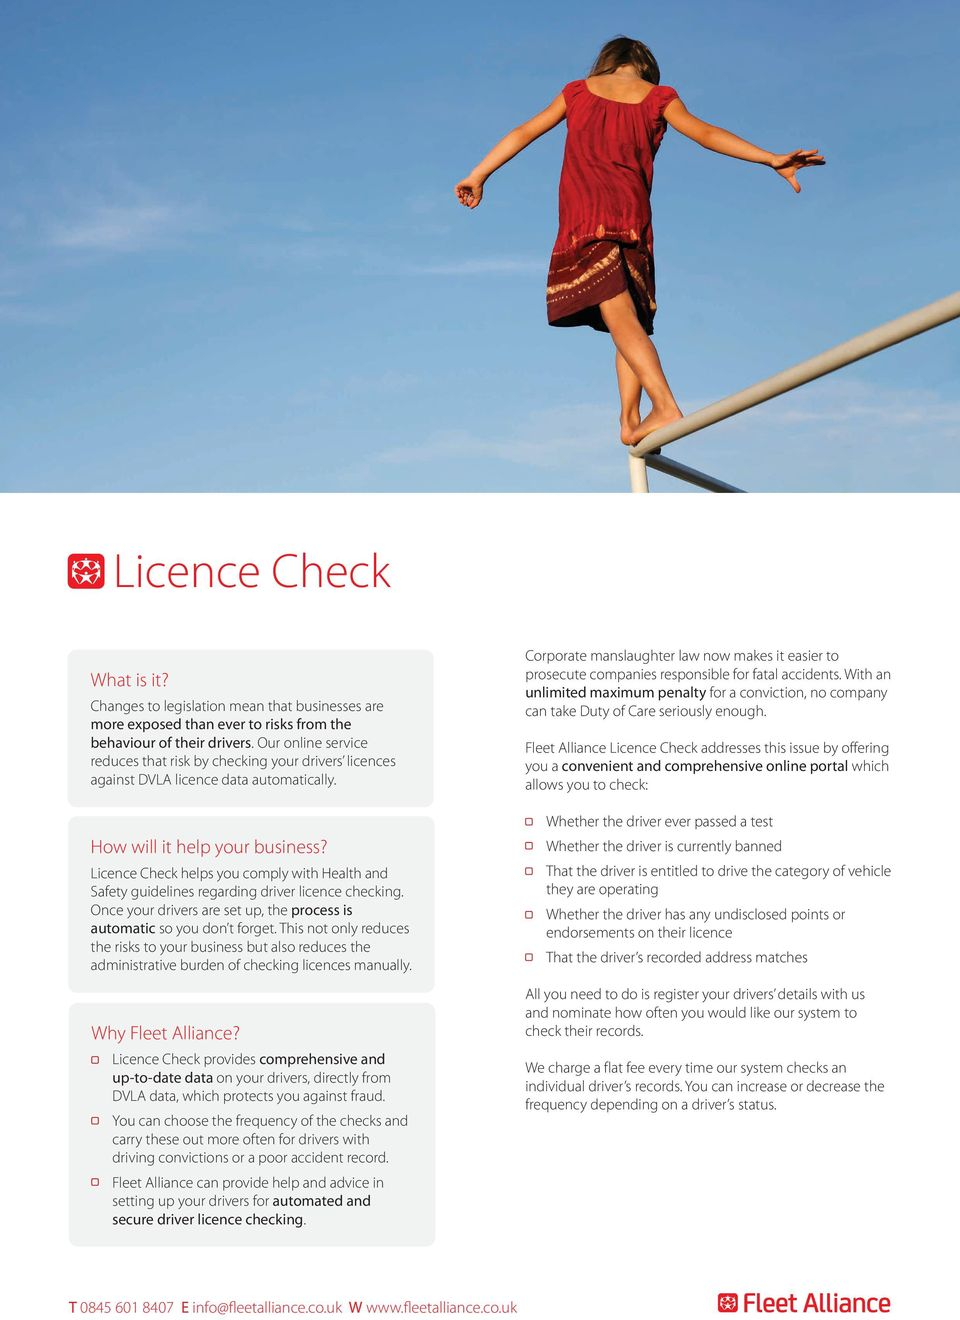 Licence Check helps you comply with Health and Safety guidelines regarding driver licence checking. Once your drivers are set up, the process is automatic so you don t forget.